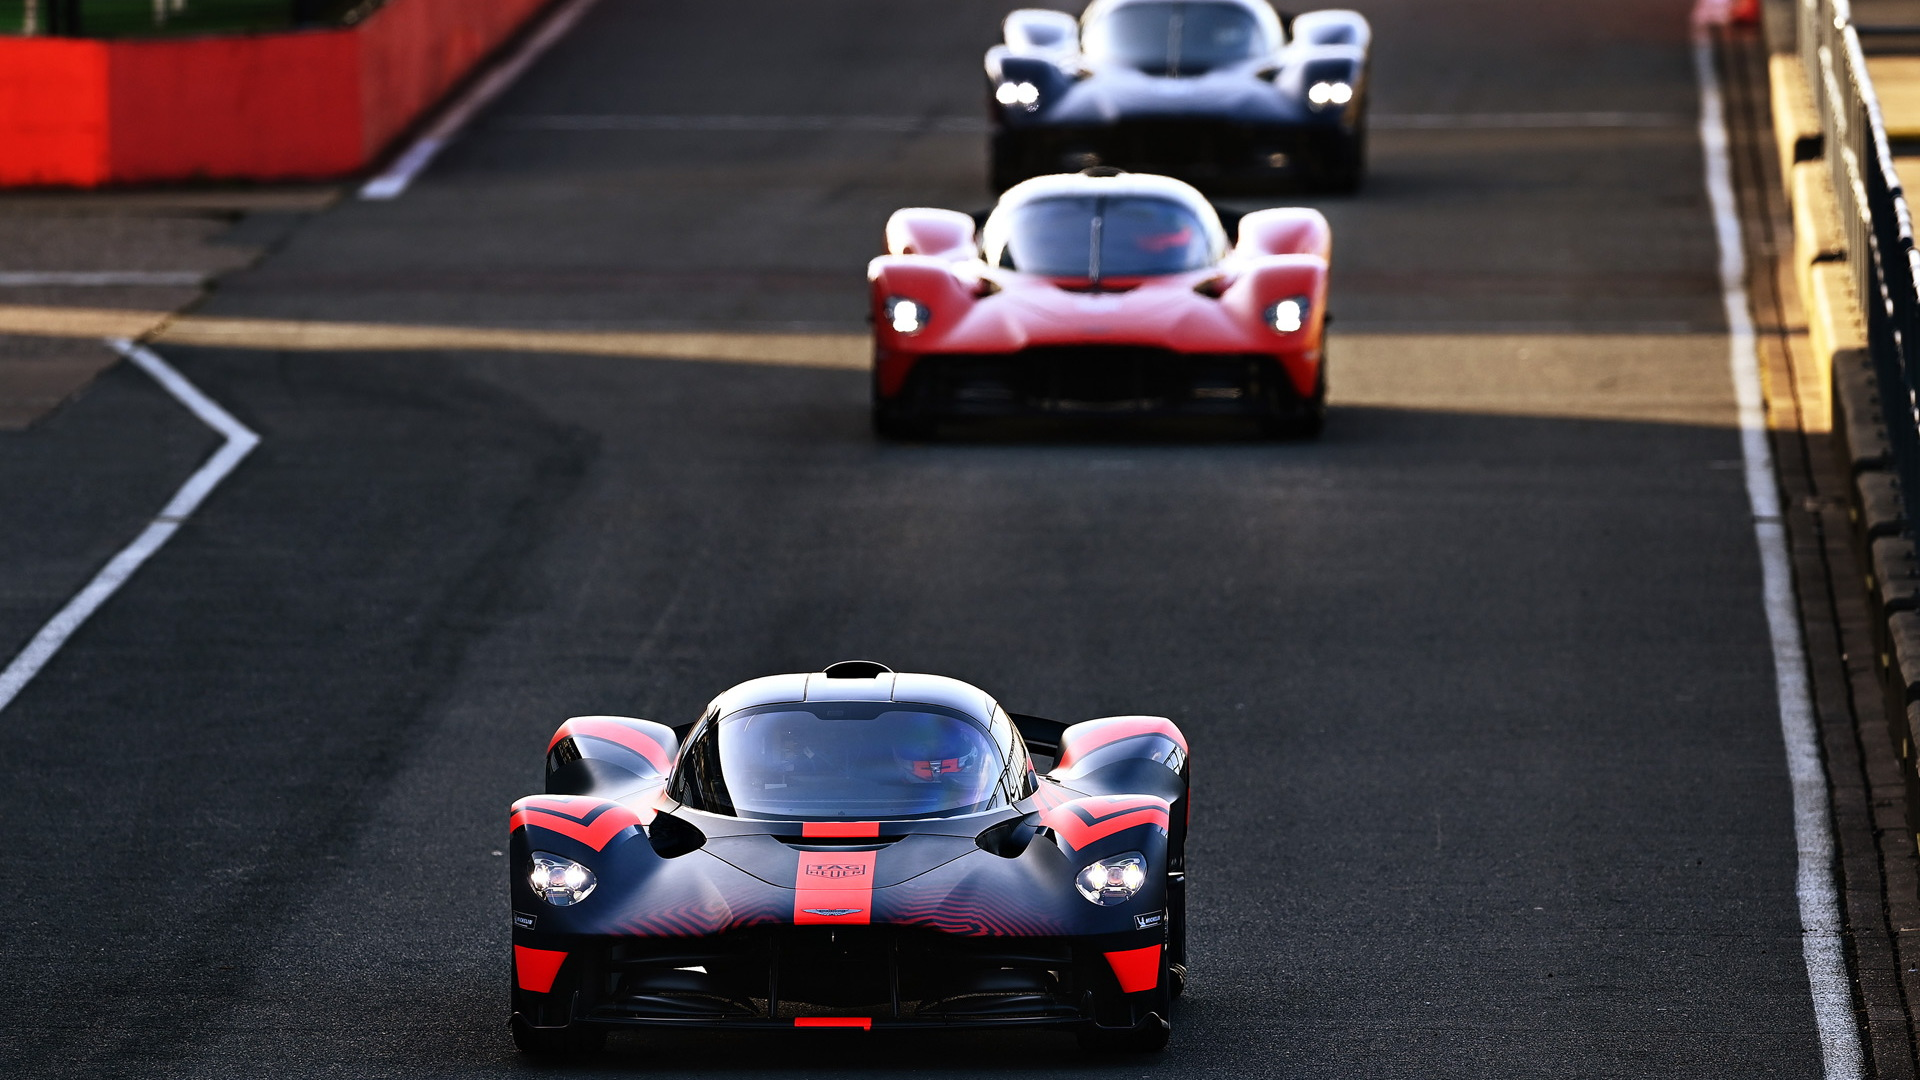 Red Bull Racing F1 drivers Max Verstappen (left) and Alex Albon test the Aston Martin Valkyrie